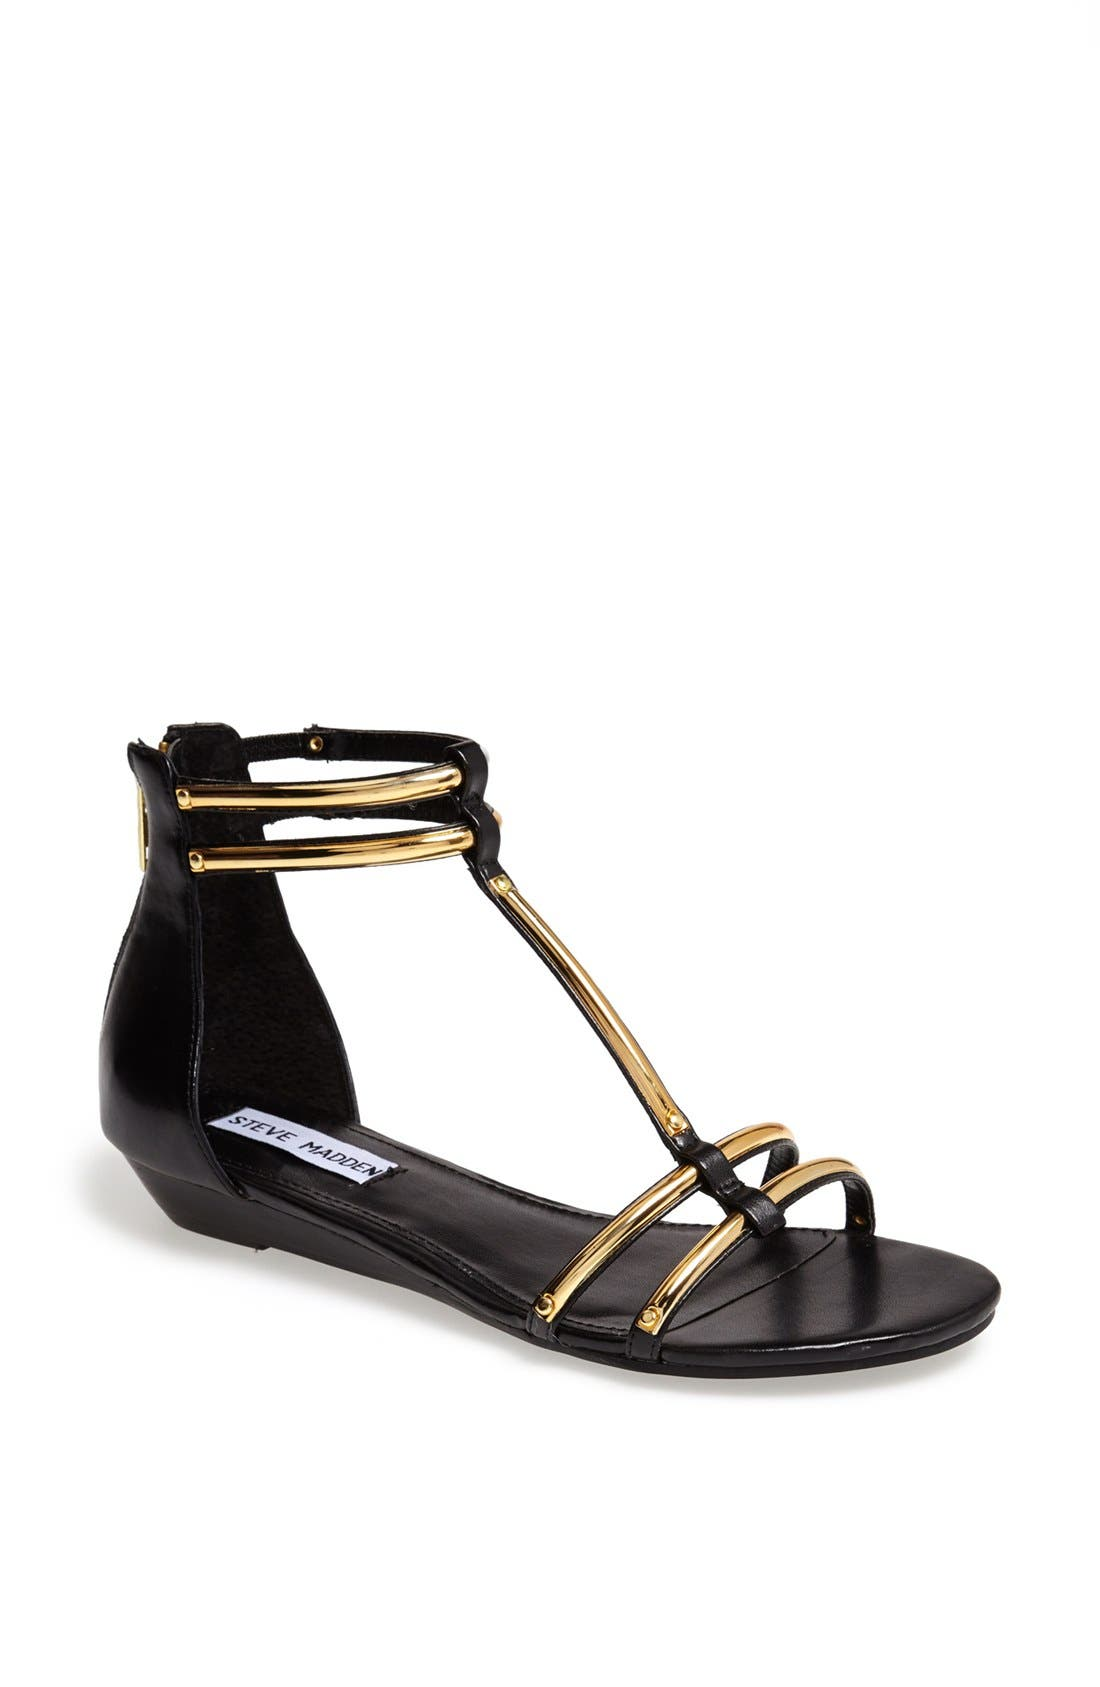 Alternate Image 1 Selected - Steve Madden 'Kelln' Sandal